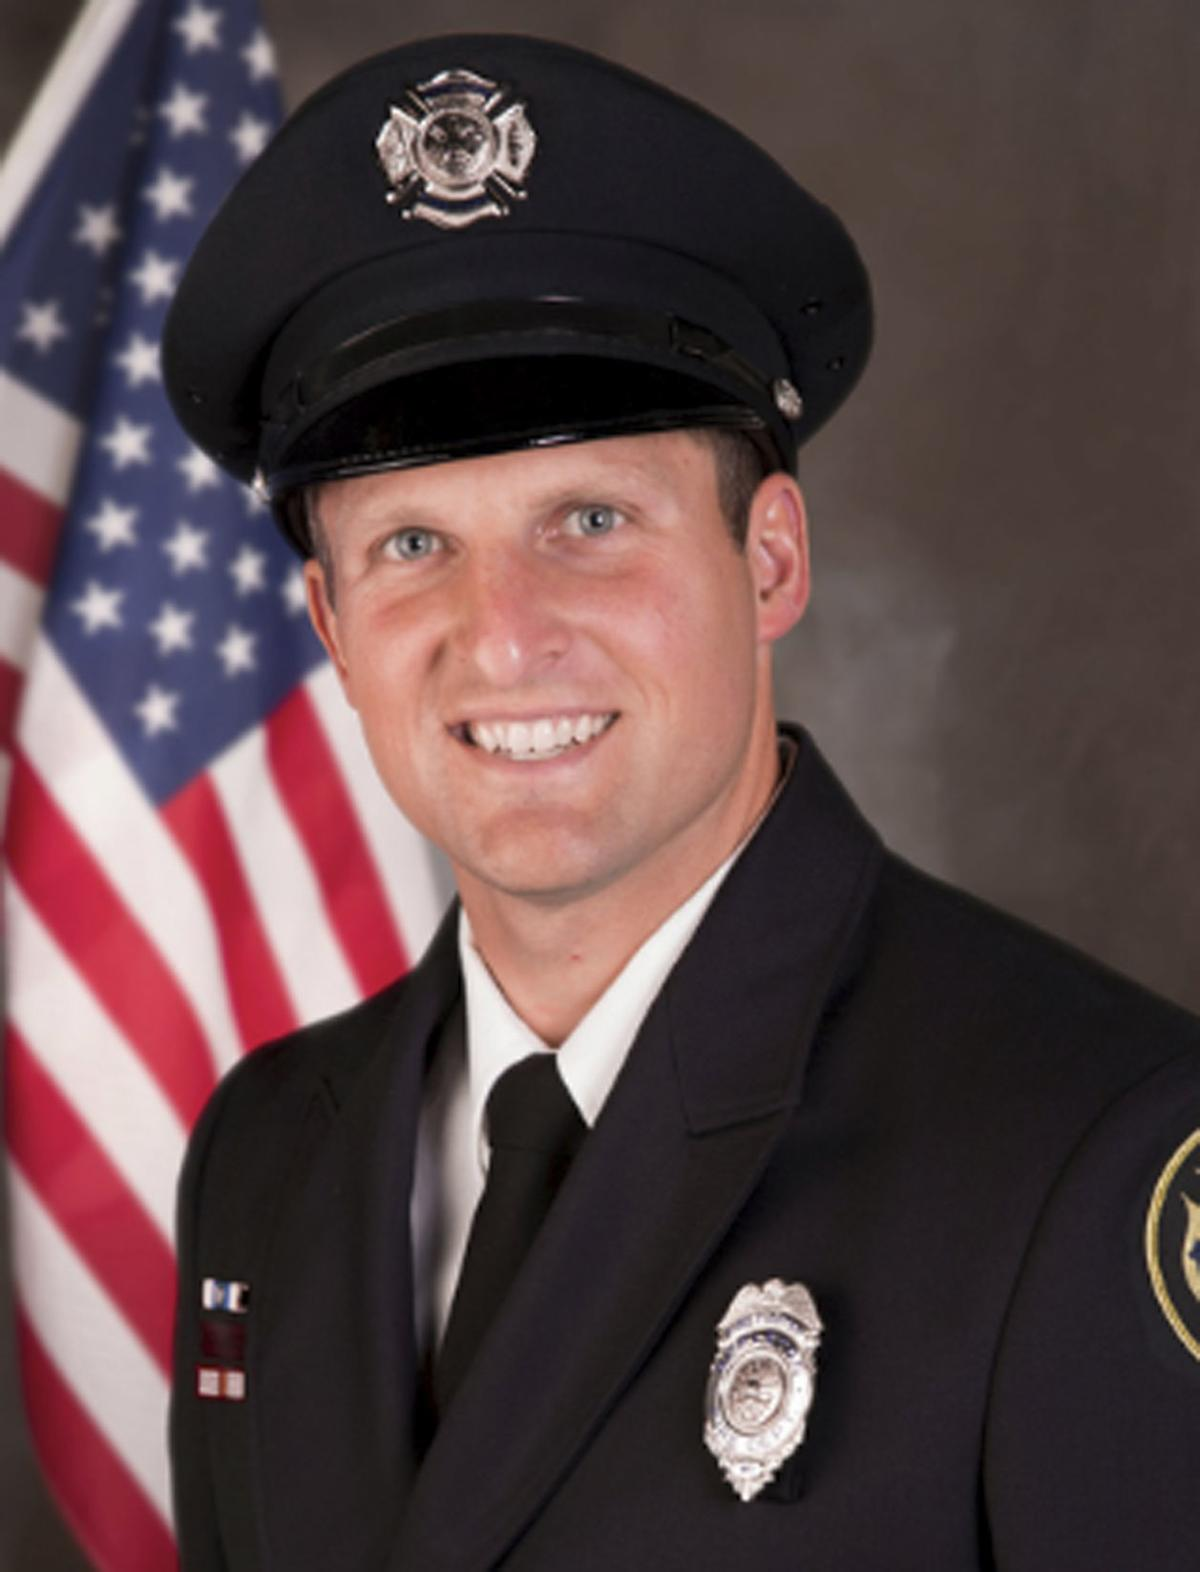 Appleton firefighter Mitch Lundgaard